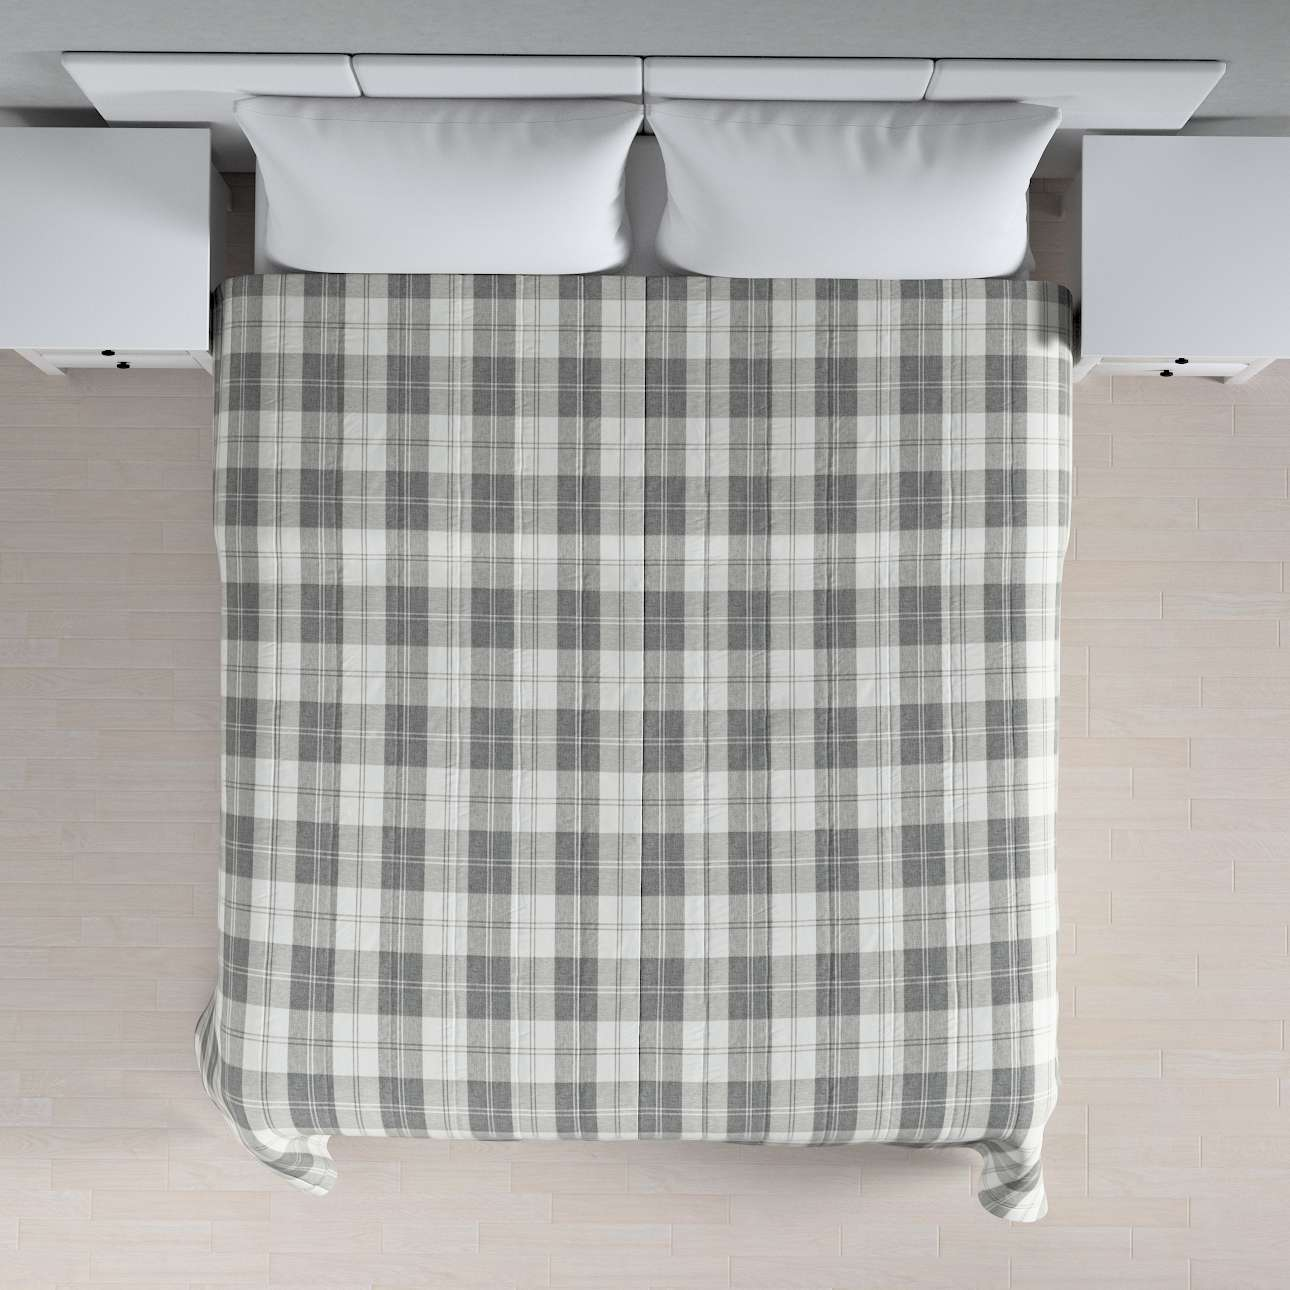 Quilted throw (vertical quilt pattern) 260 x 210 cm (102 x 83 inch) in collection Edinburgh , fabric: 115-79